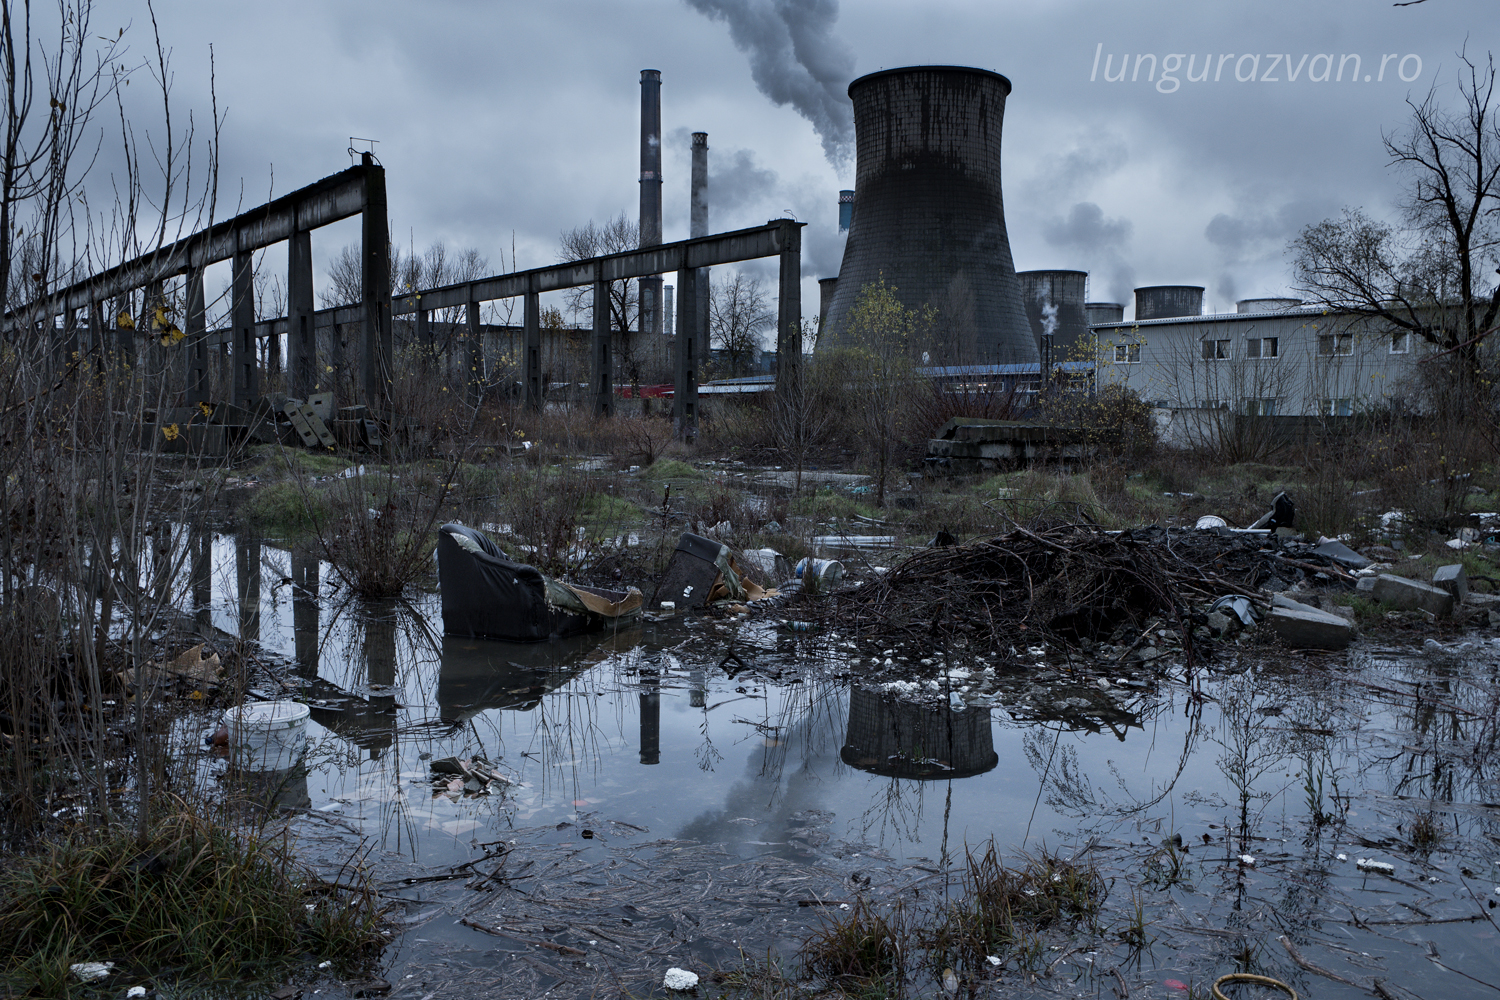 Pollution, Man Made Disaster. A desolate landscape filled with garbage and toxic industrial fumes.